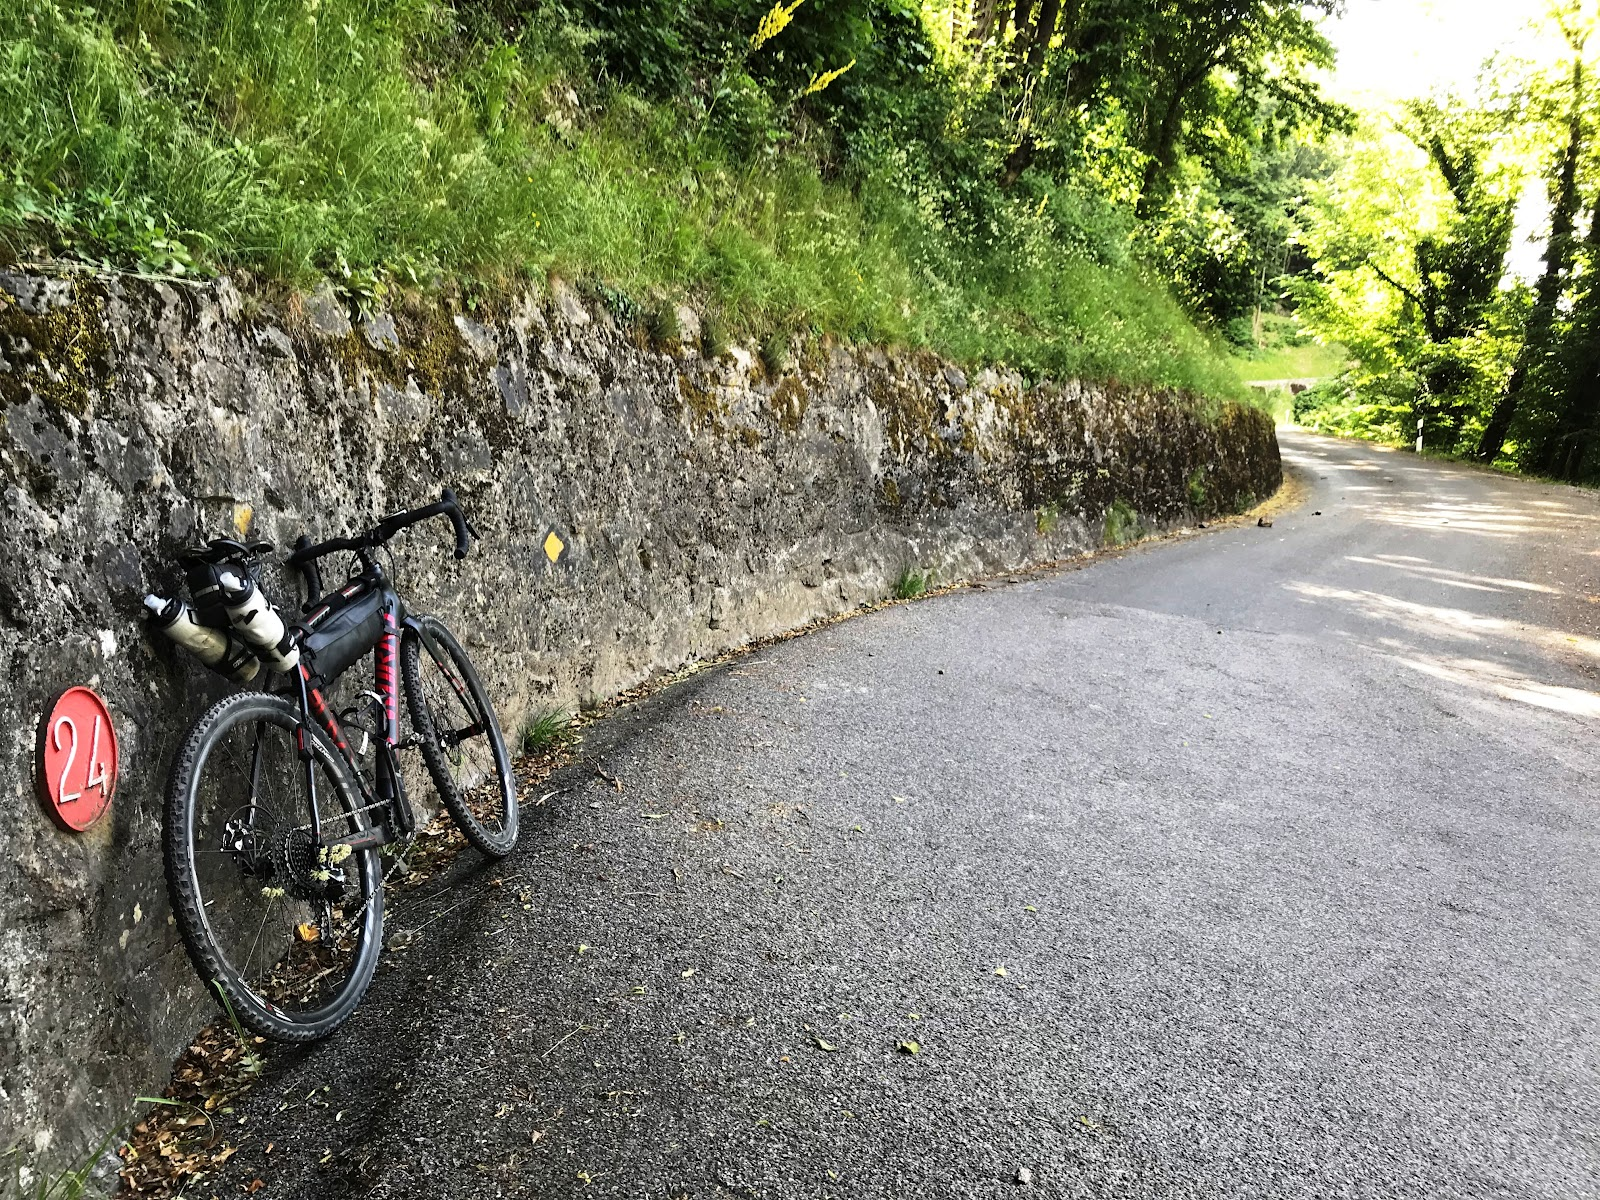 Cycling Rionda - bicycle leaning against wall, hairpin 24 sign and road